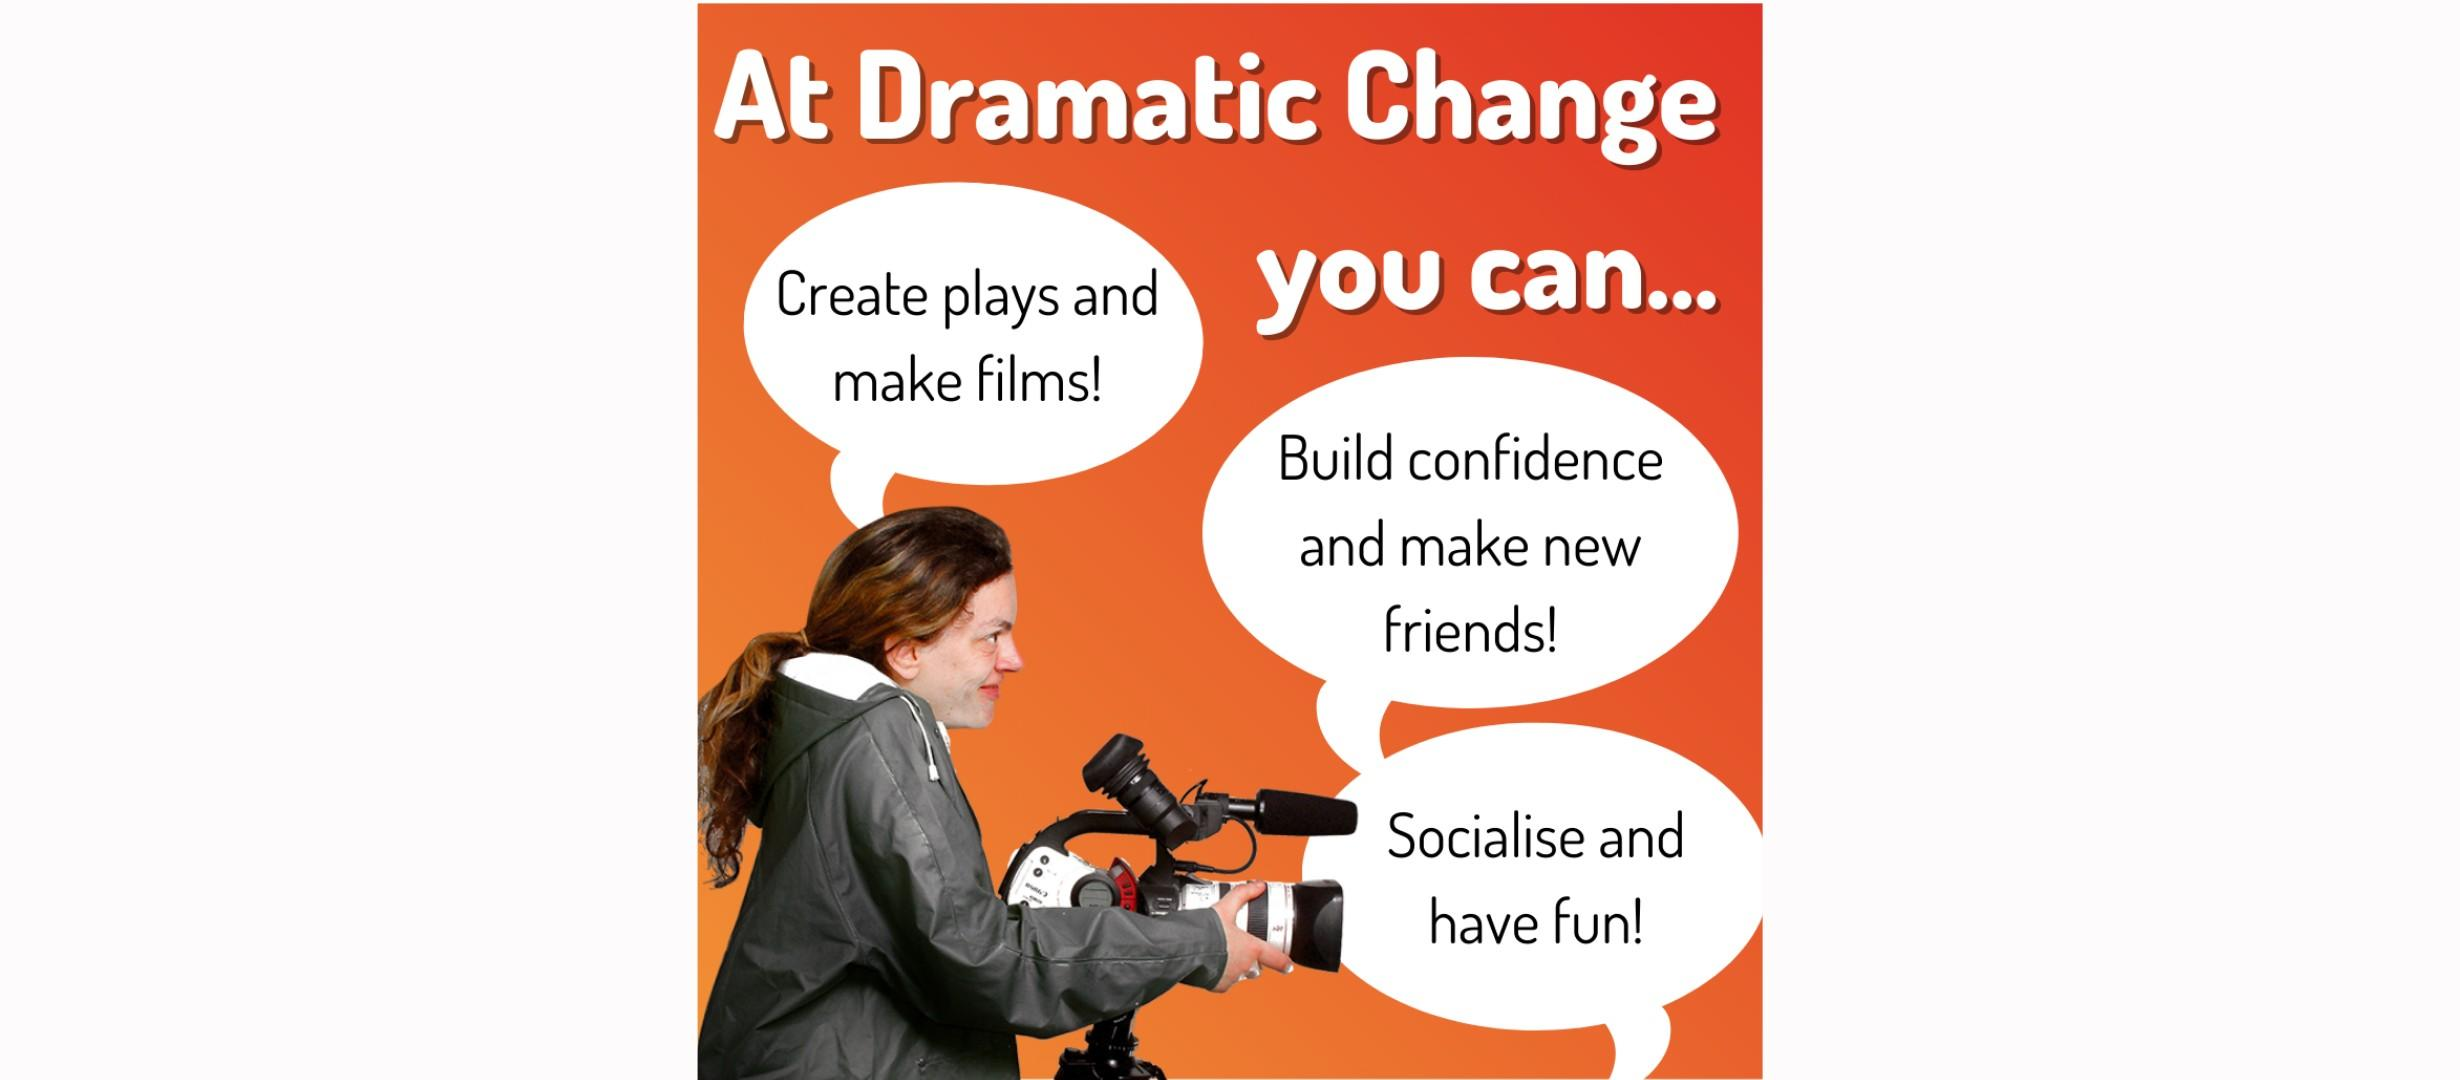 woman with camera, text reads 'at dramatic change you can... create plays and make films! Build confidence and make new friends! Socialise and have fun!'